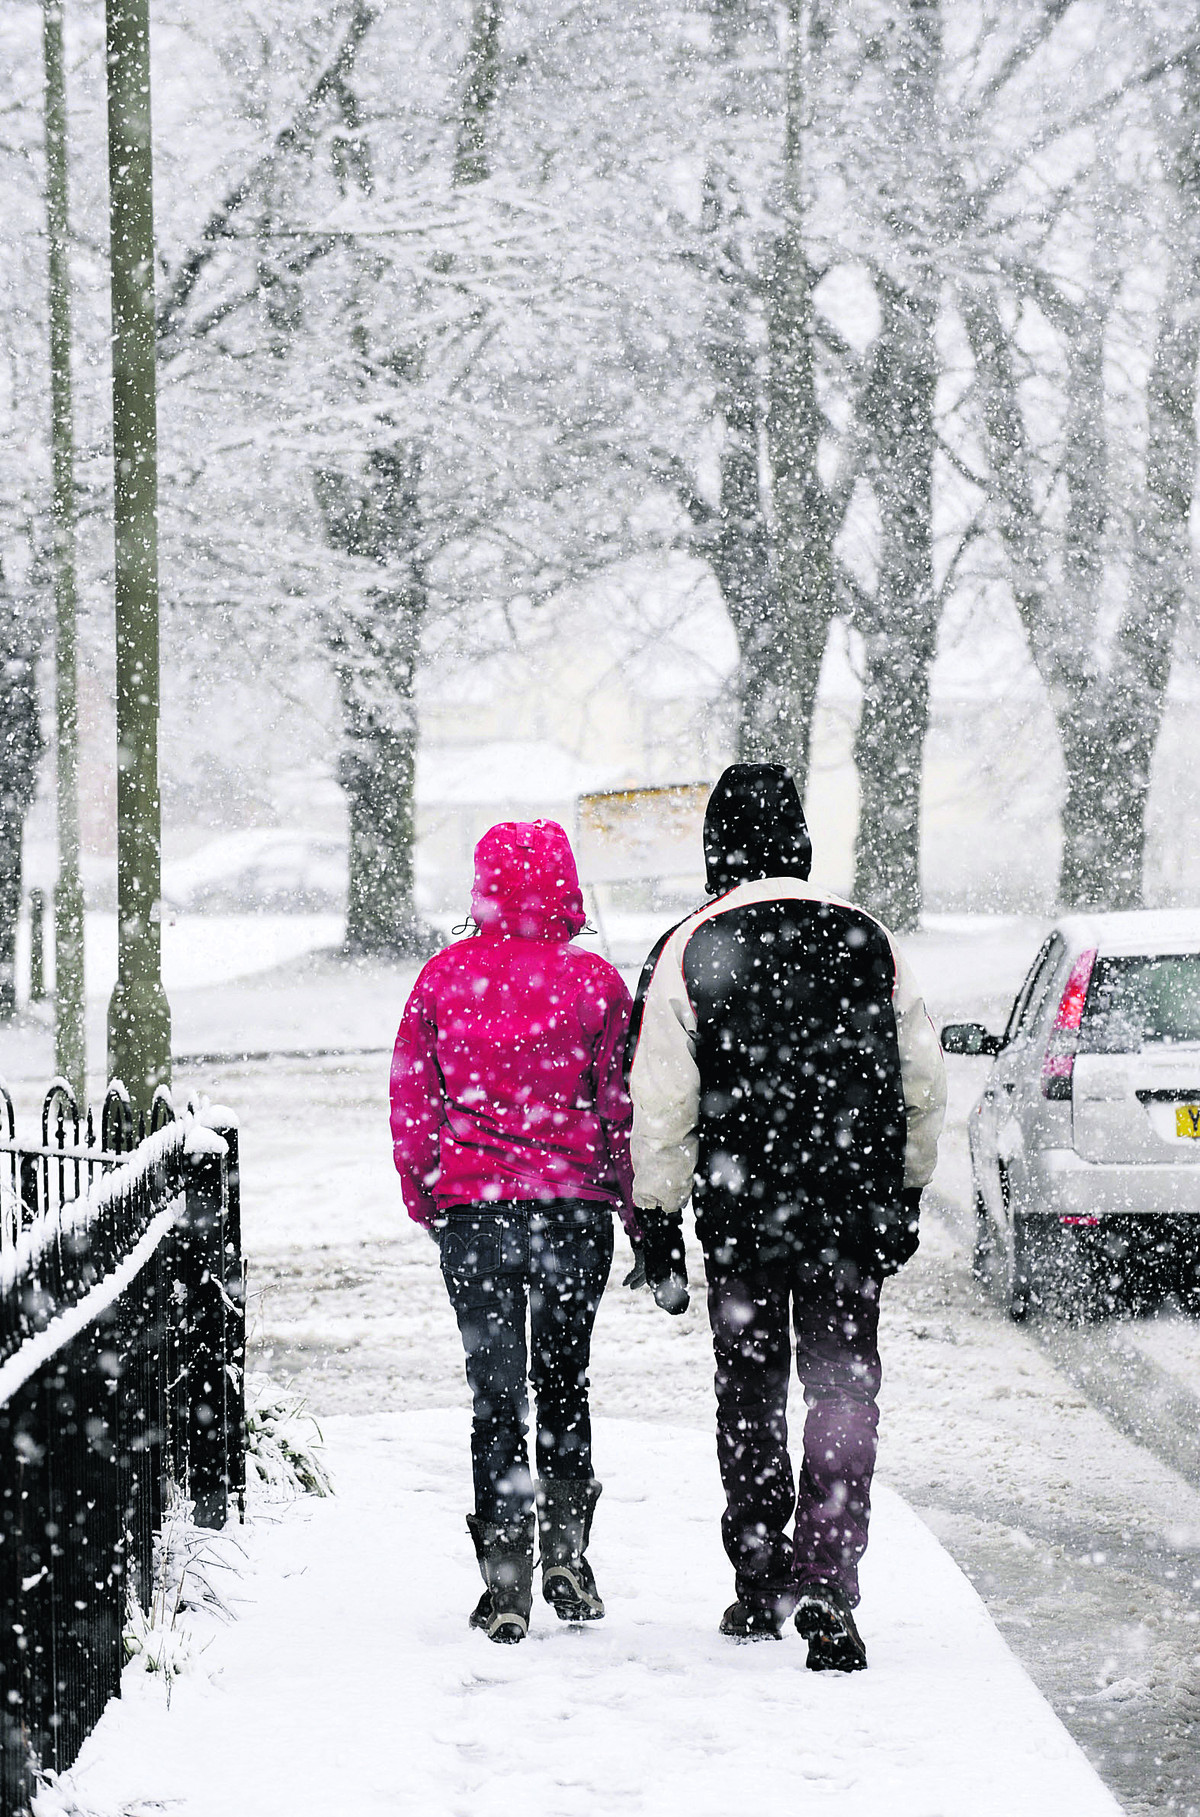 Snow predicted for parts of county today